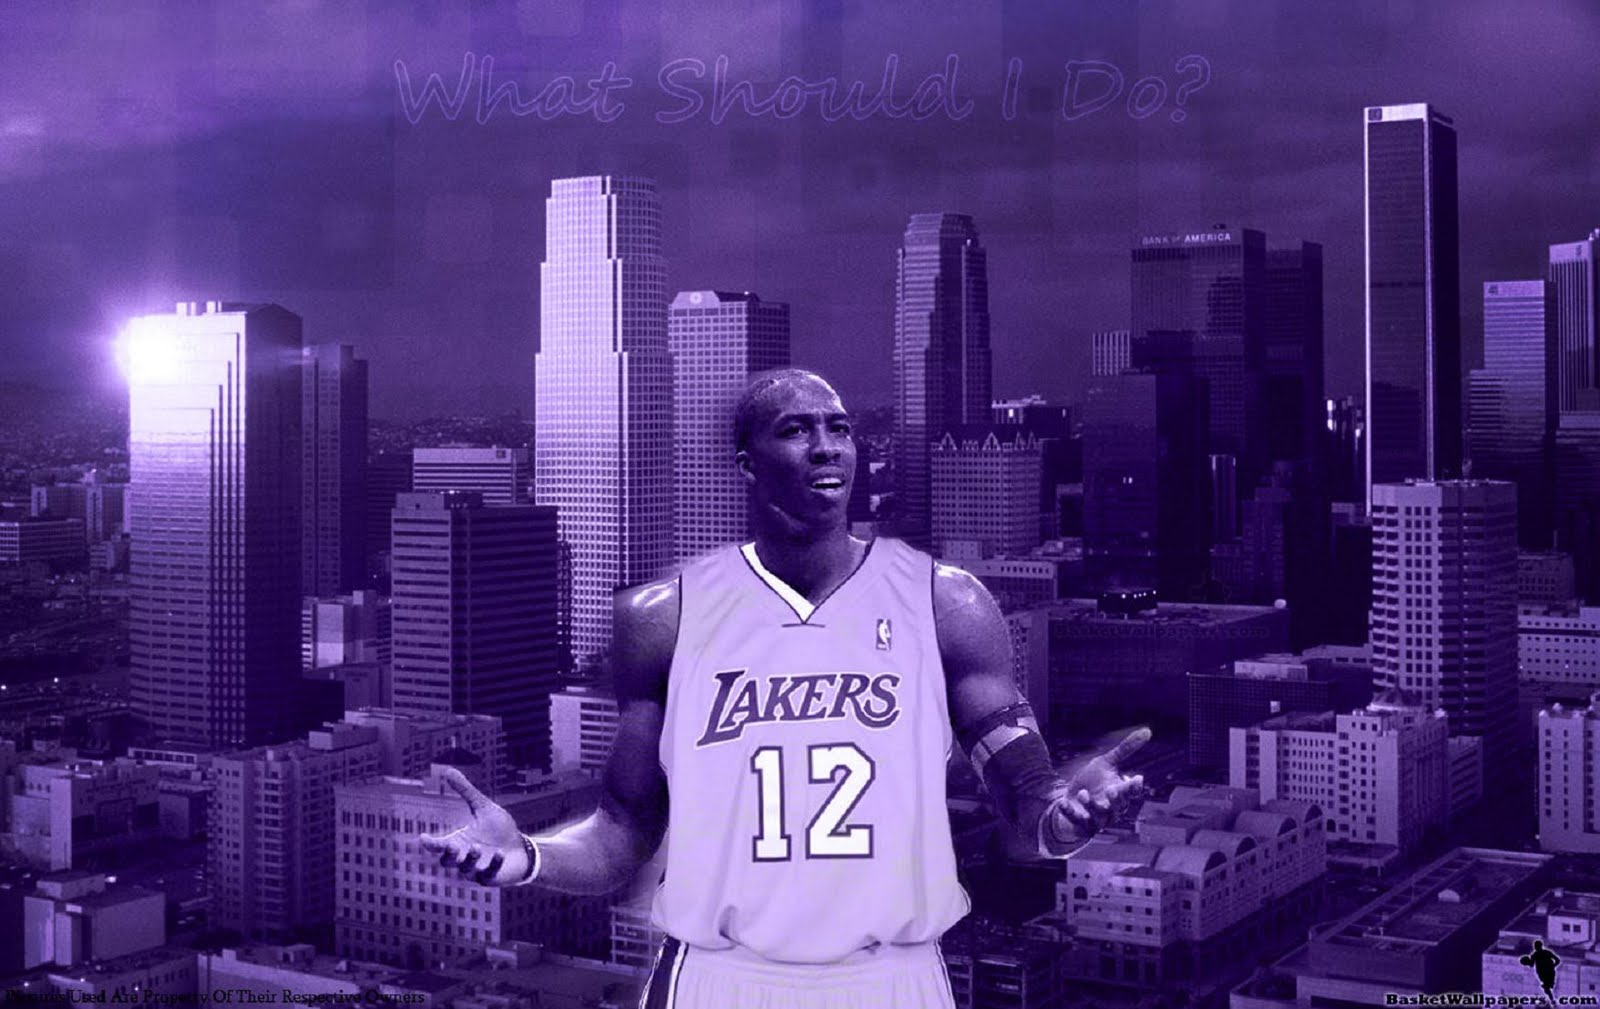 http://2.bp.blogspot.com/-Ozuv3_RZ280/TiWEWENcEmI/AAAAAAAAA9Q/aWjReYAK-yM/s1600/Dwight-Howard-LA-Lakers-Uniform.jpg